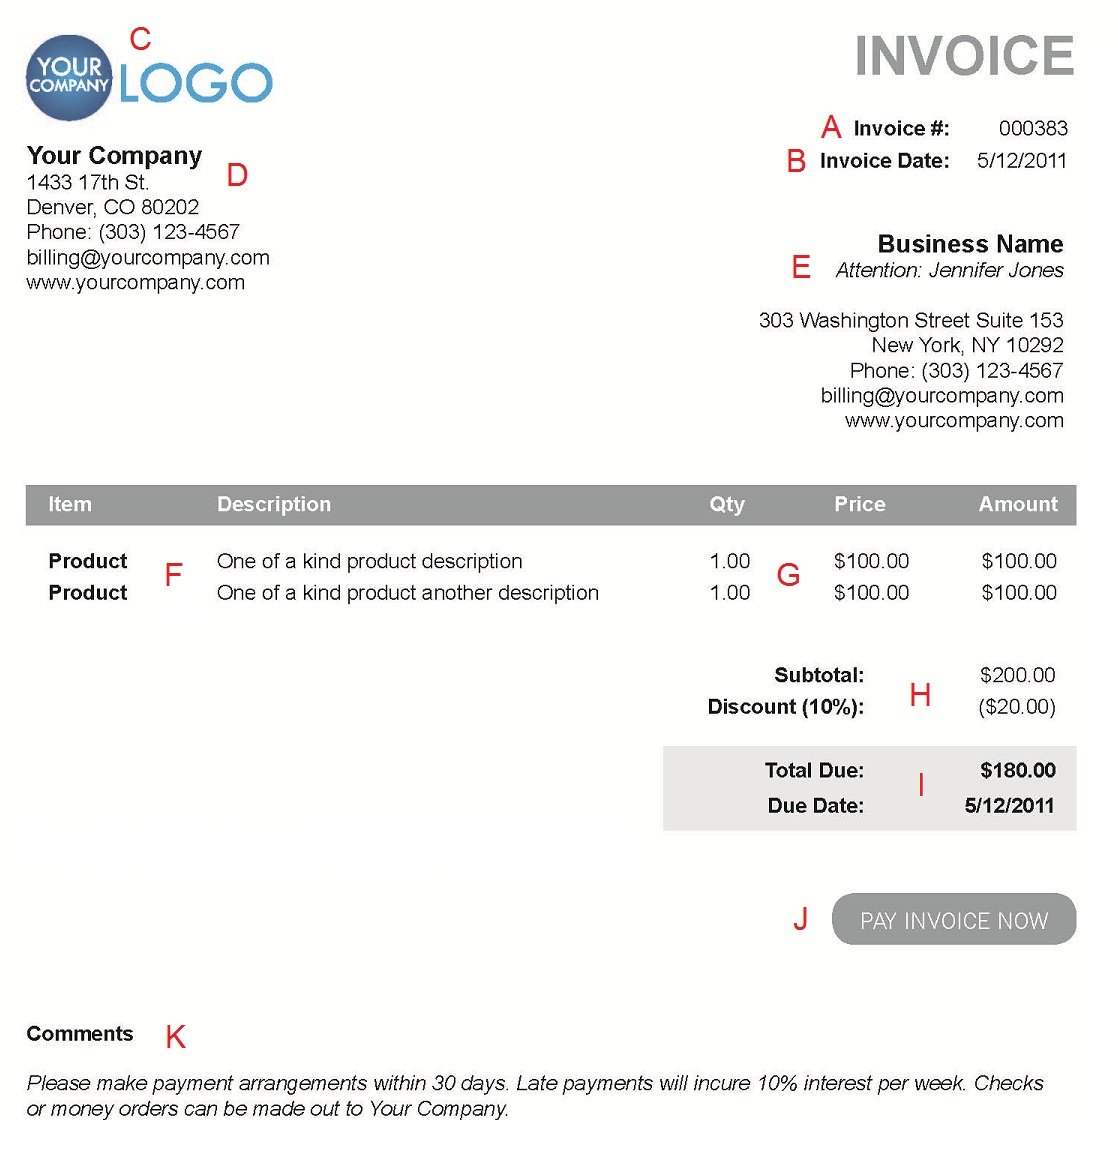 Breakupus  Prepossessing The  Different Sections Of An Electronic Payment Invoice With Excellent A  With Enchanting Invoice Nz Also Reminder Letter For An Outstanding Invoice Payment In Addition Consulting Invoice Template Word And Mechanic Shop Invoice Templates As Well As How To Make Invoices Additionally Whats A Proforma Invoice From Paysimplecom With Breakupus  Excellent The  Different Sections Of An Electronic Payment Invoice With Enchanting A  And Prepossessing Invoice Nz Also Reminder Letter For An Outstanding Invoice Payment In Addition Consulting Invoice Template Word From Paysimplecom